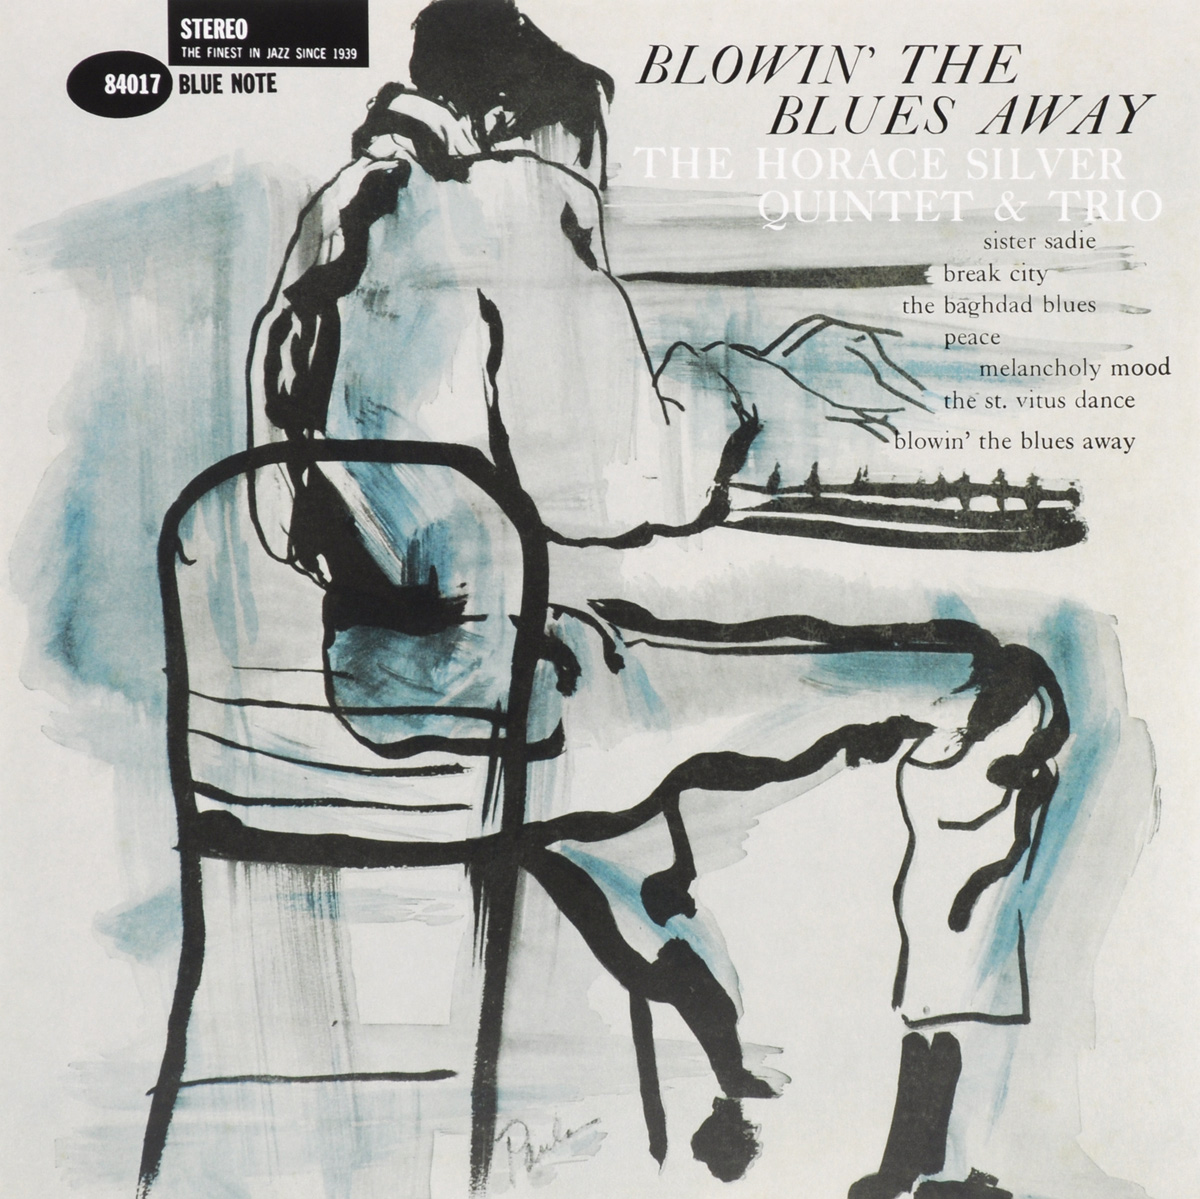 The Horace Silver Quintet Horace Silver Quintet & Trio. Blowin' The Blues Away (LP) schubert schubertsviatoslav richter piano quintet the trout